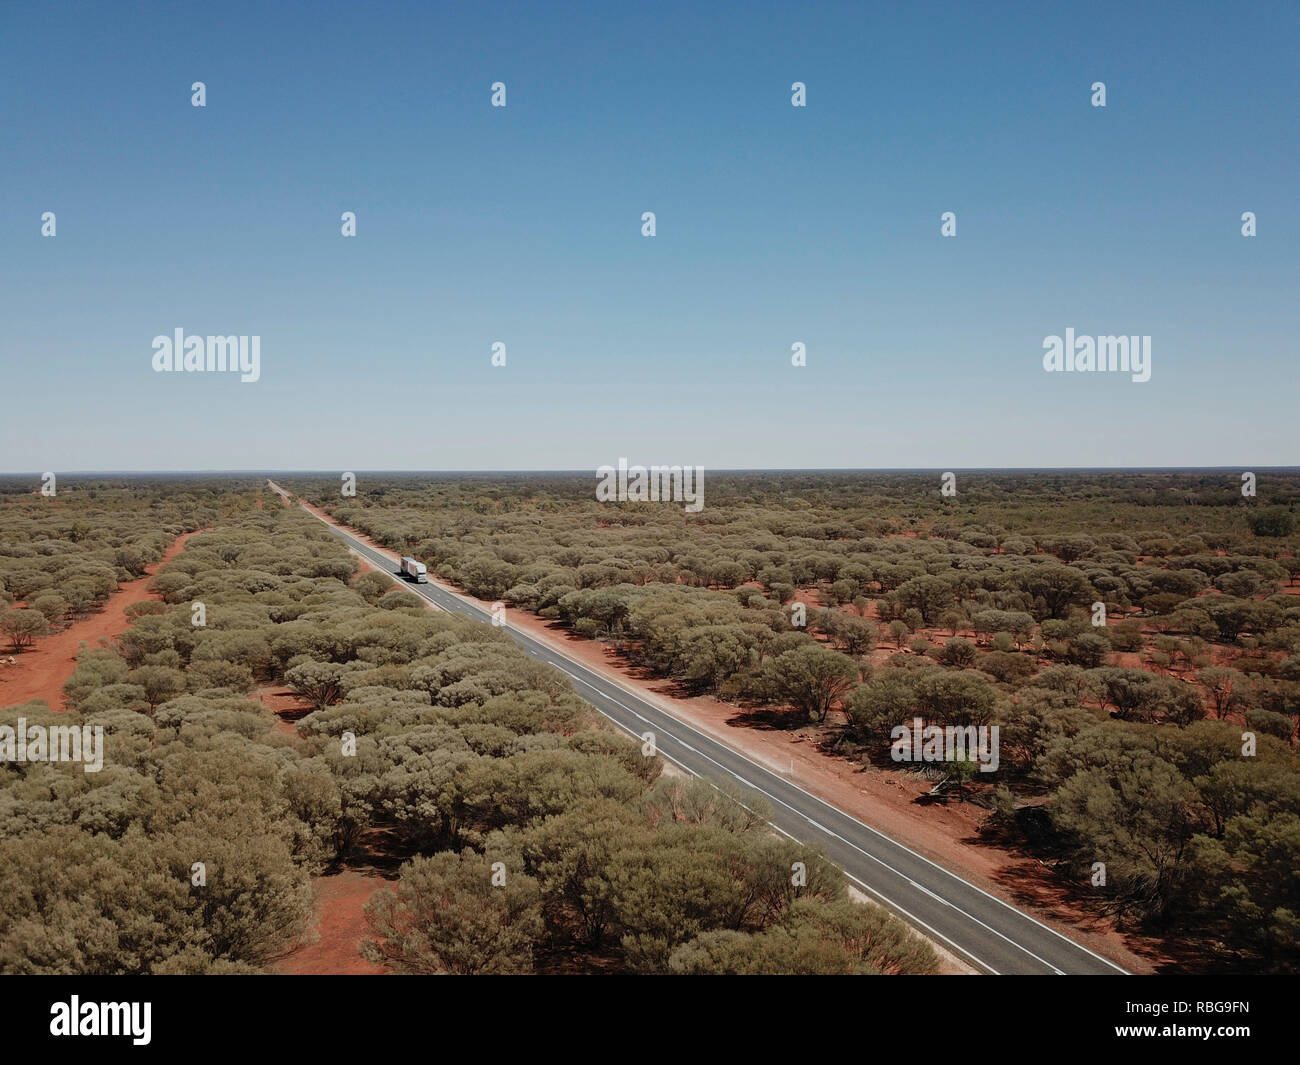 Aerial of the Barrier Highway midway between Cobar and Wilcannia New South Wales Australia - Stock Image